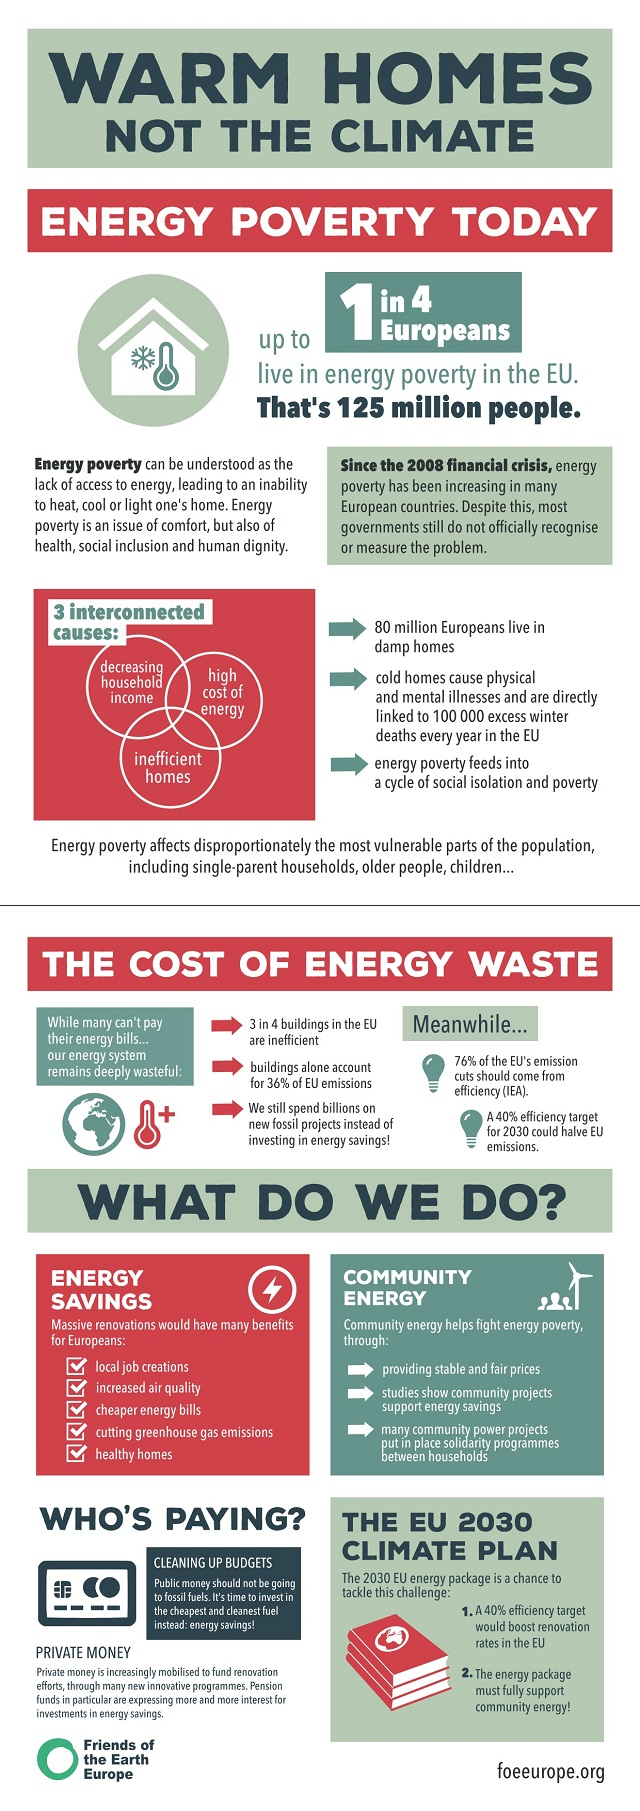 The cost of energy waste infographic